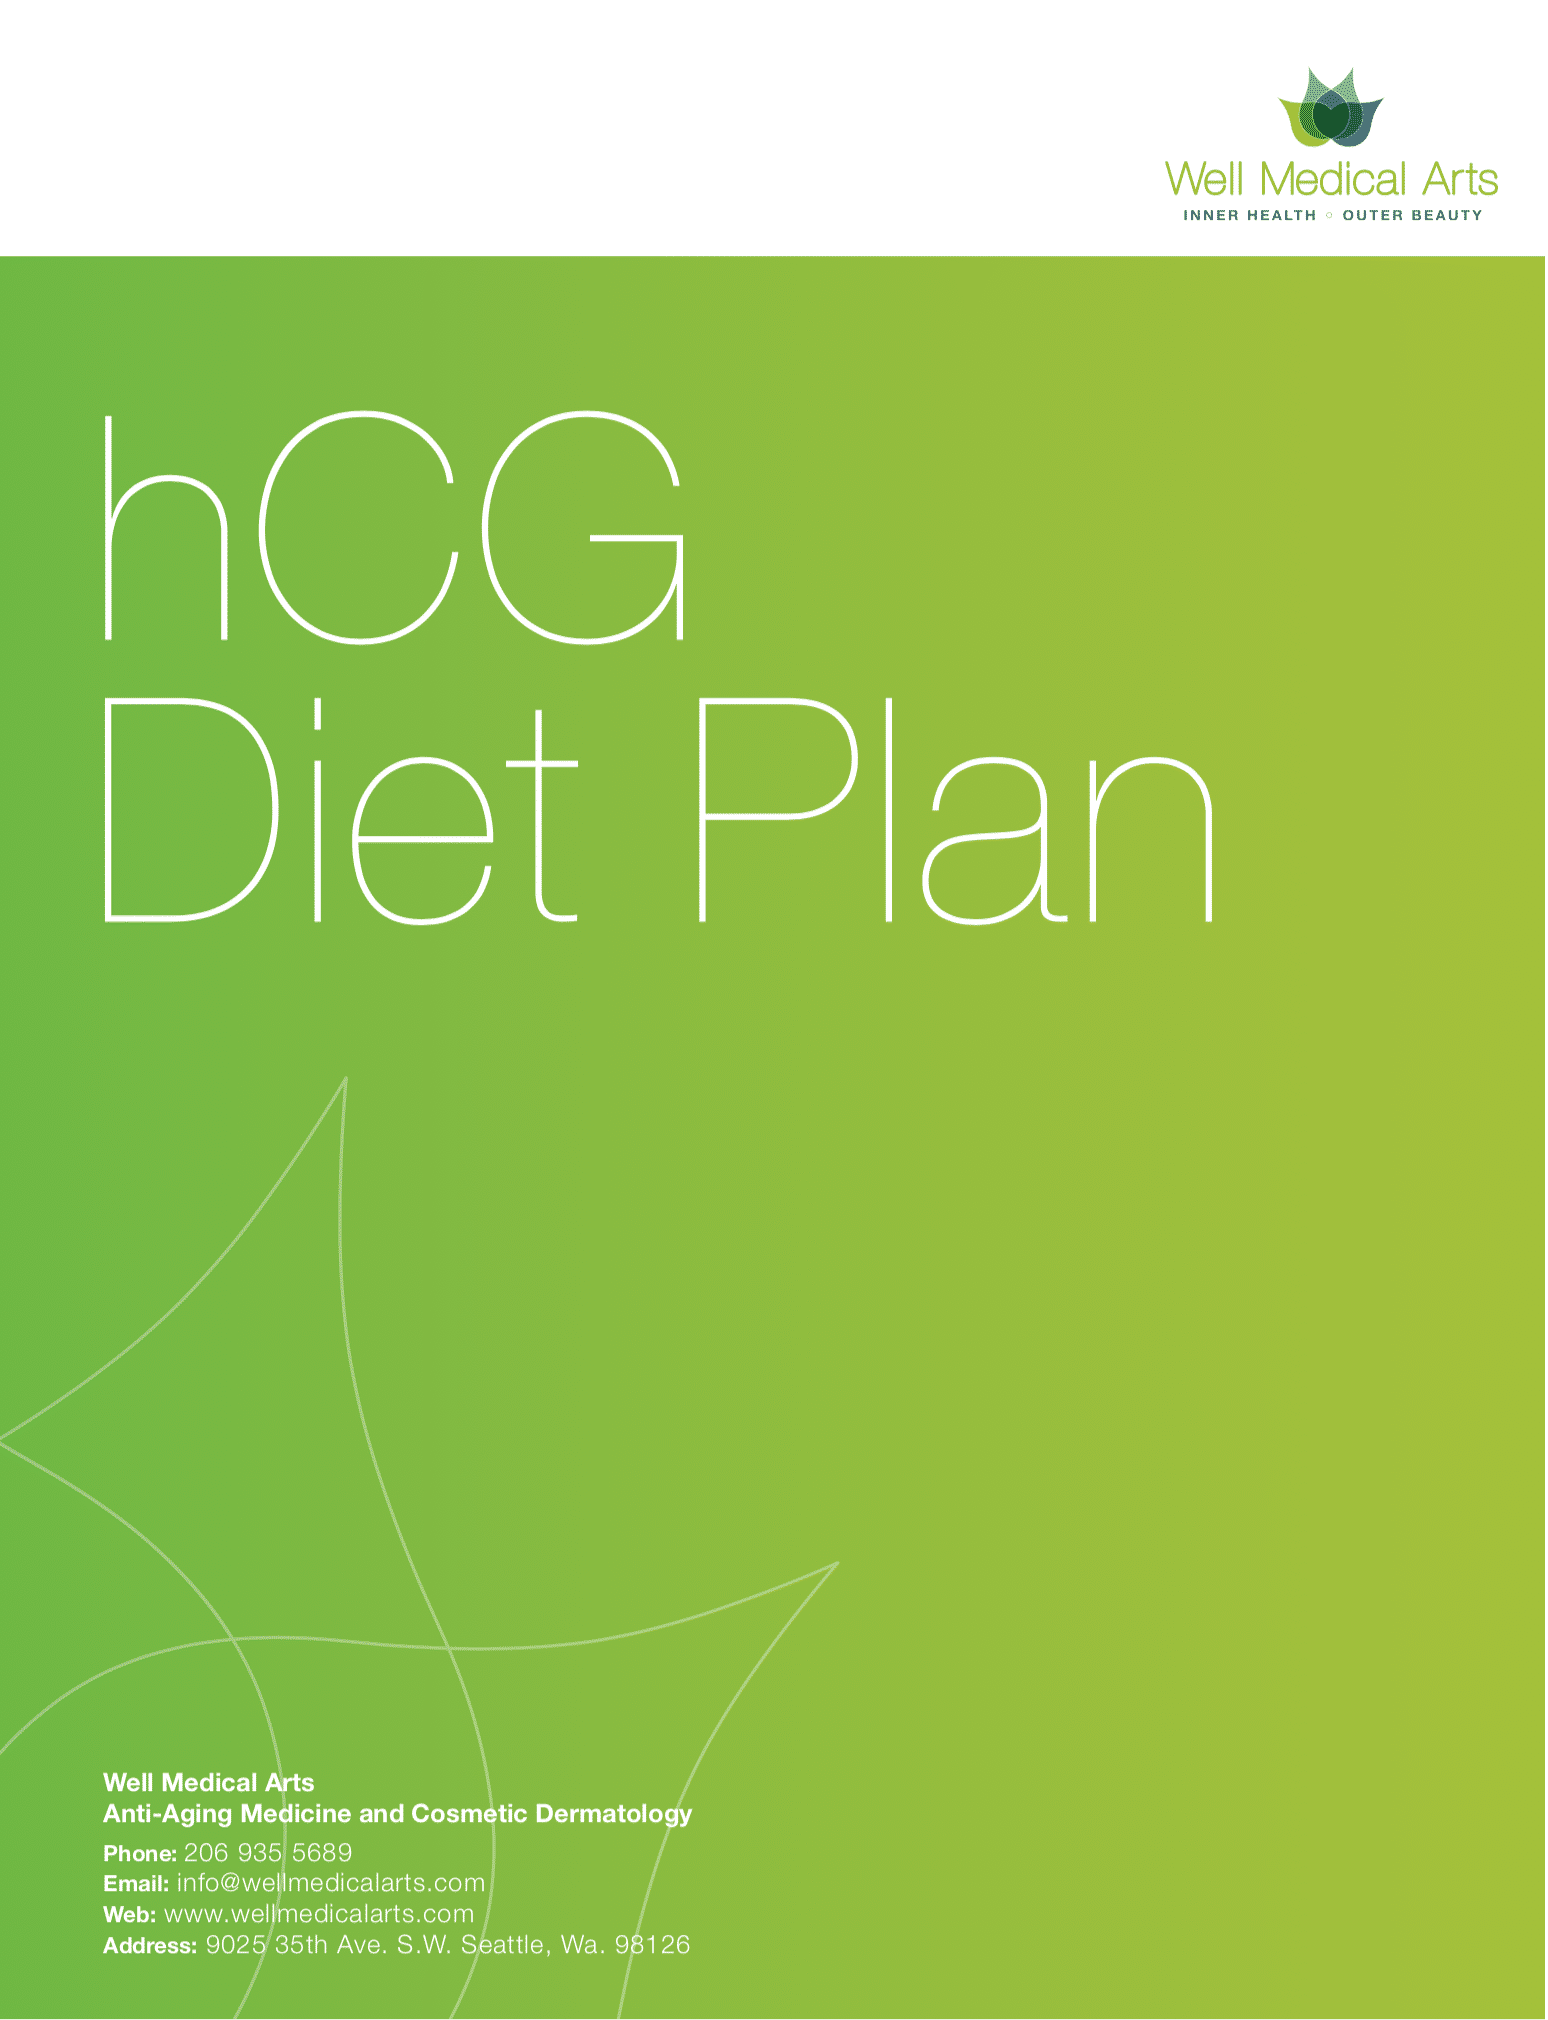 The Hcg program at Well Medical Arts in Seattle is specifically designed to give you all the tools you need to succeed in getting to you goal weight. call 206-935-5689 to learn more.